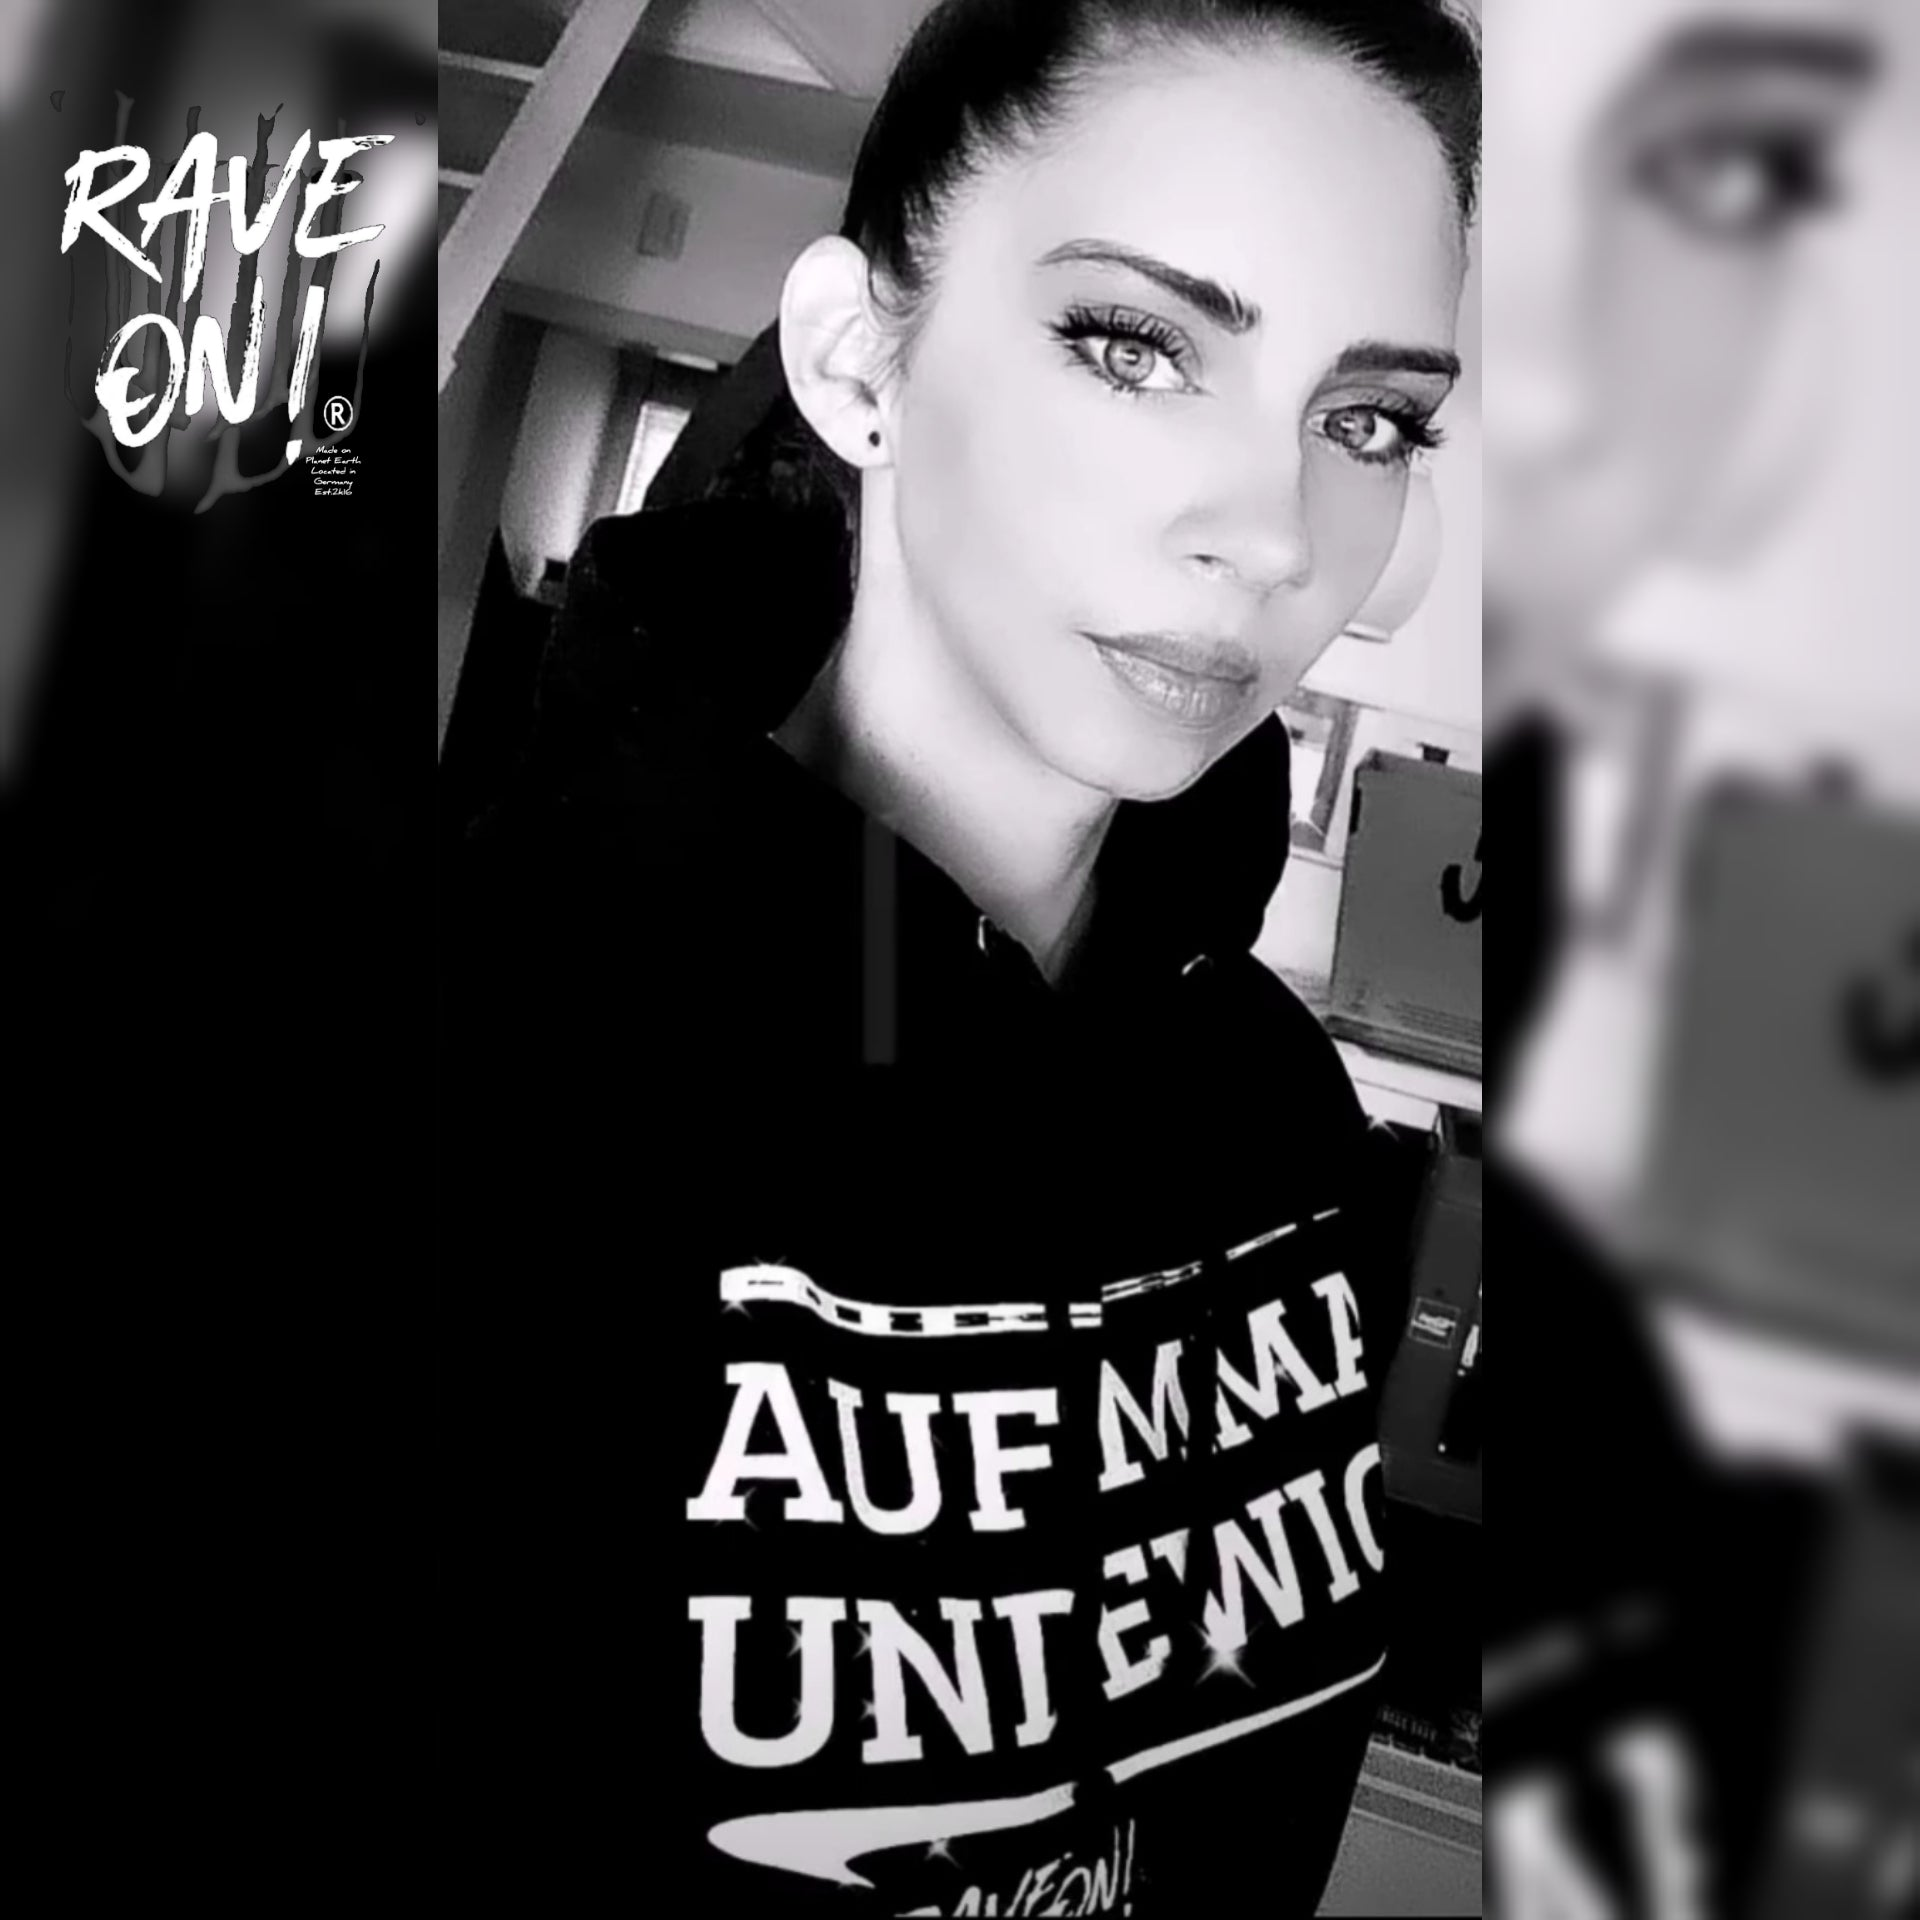 FOR EMMA AND FOREVER - Rave On!® - Unisex Hooded Sweater Hoodie Unisex Hoodie - Rave On!® the club & techno scene shop for cool young fashion streetwear style & fashion outfits + sexy festival 420 stuff